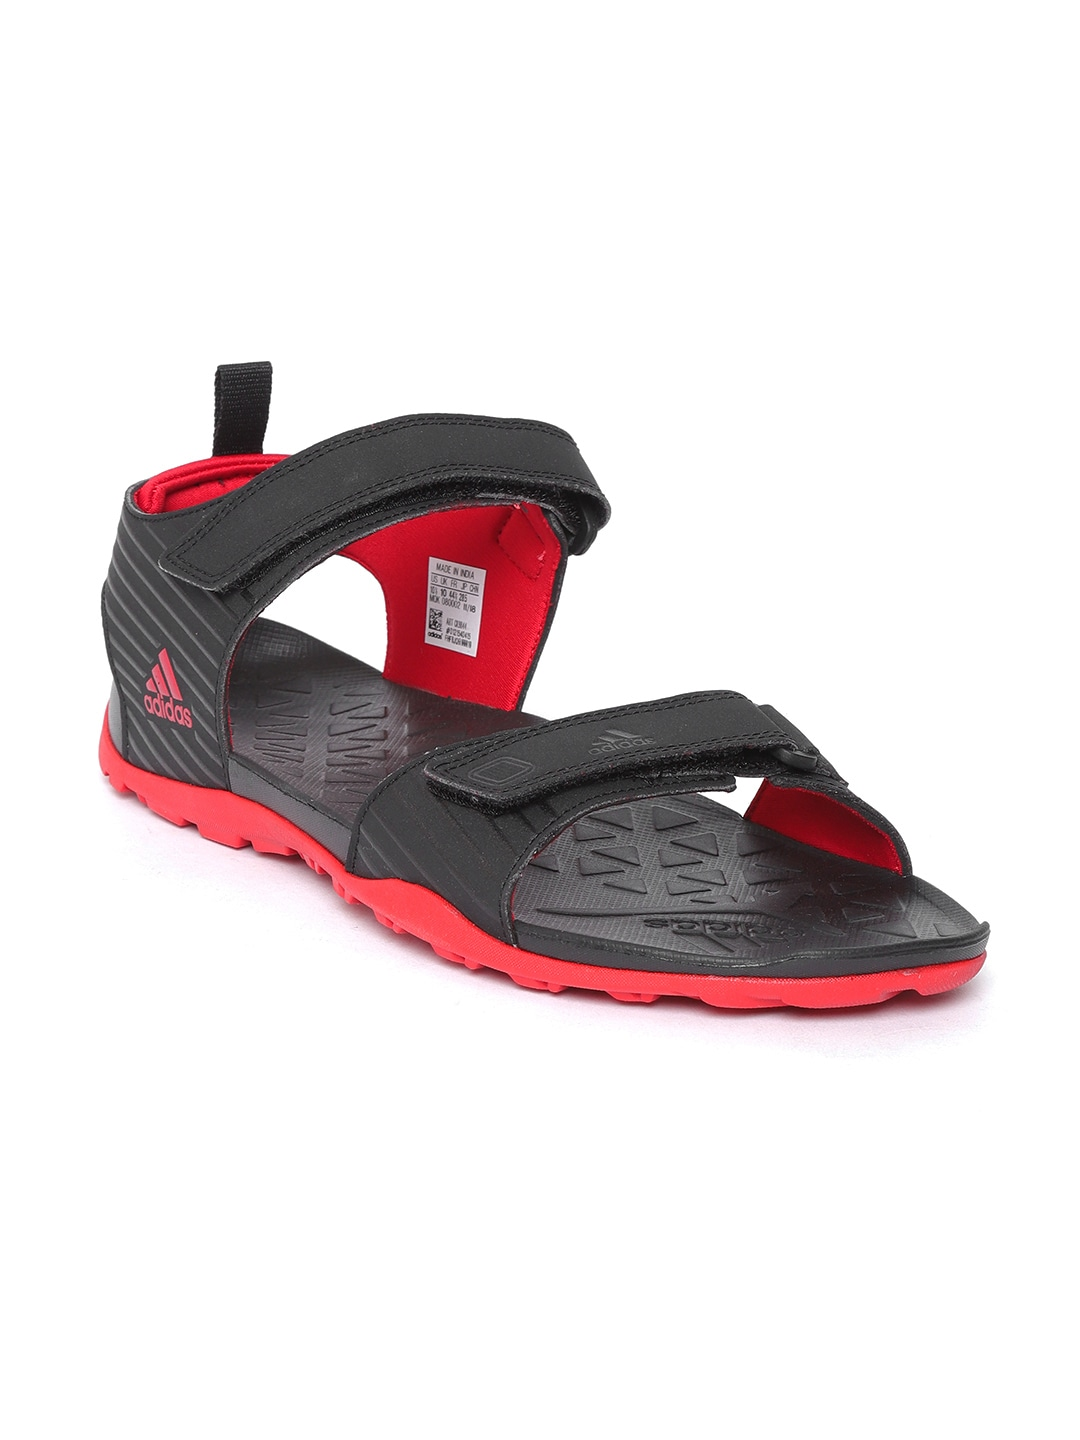 6d4ce83ac350 Adidas Sandal Men - Buy Adidas Sandal Men online in India